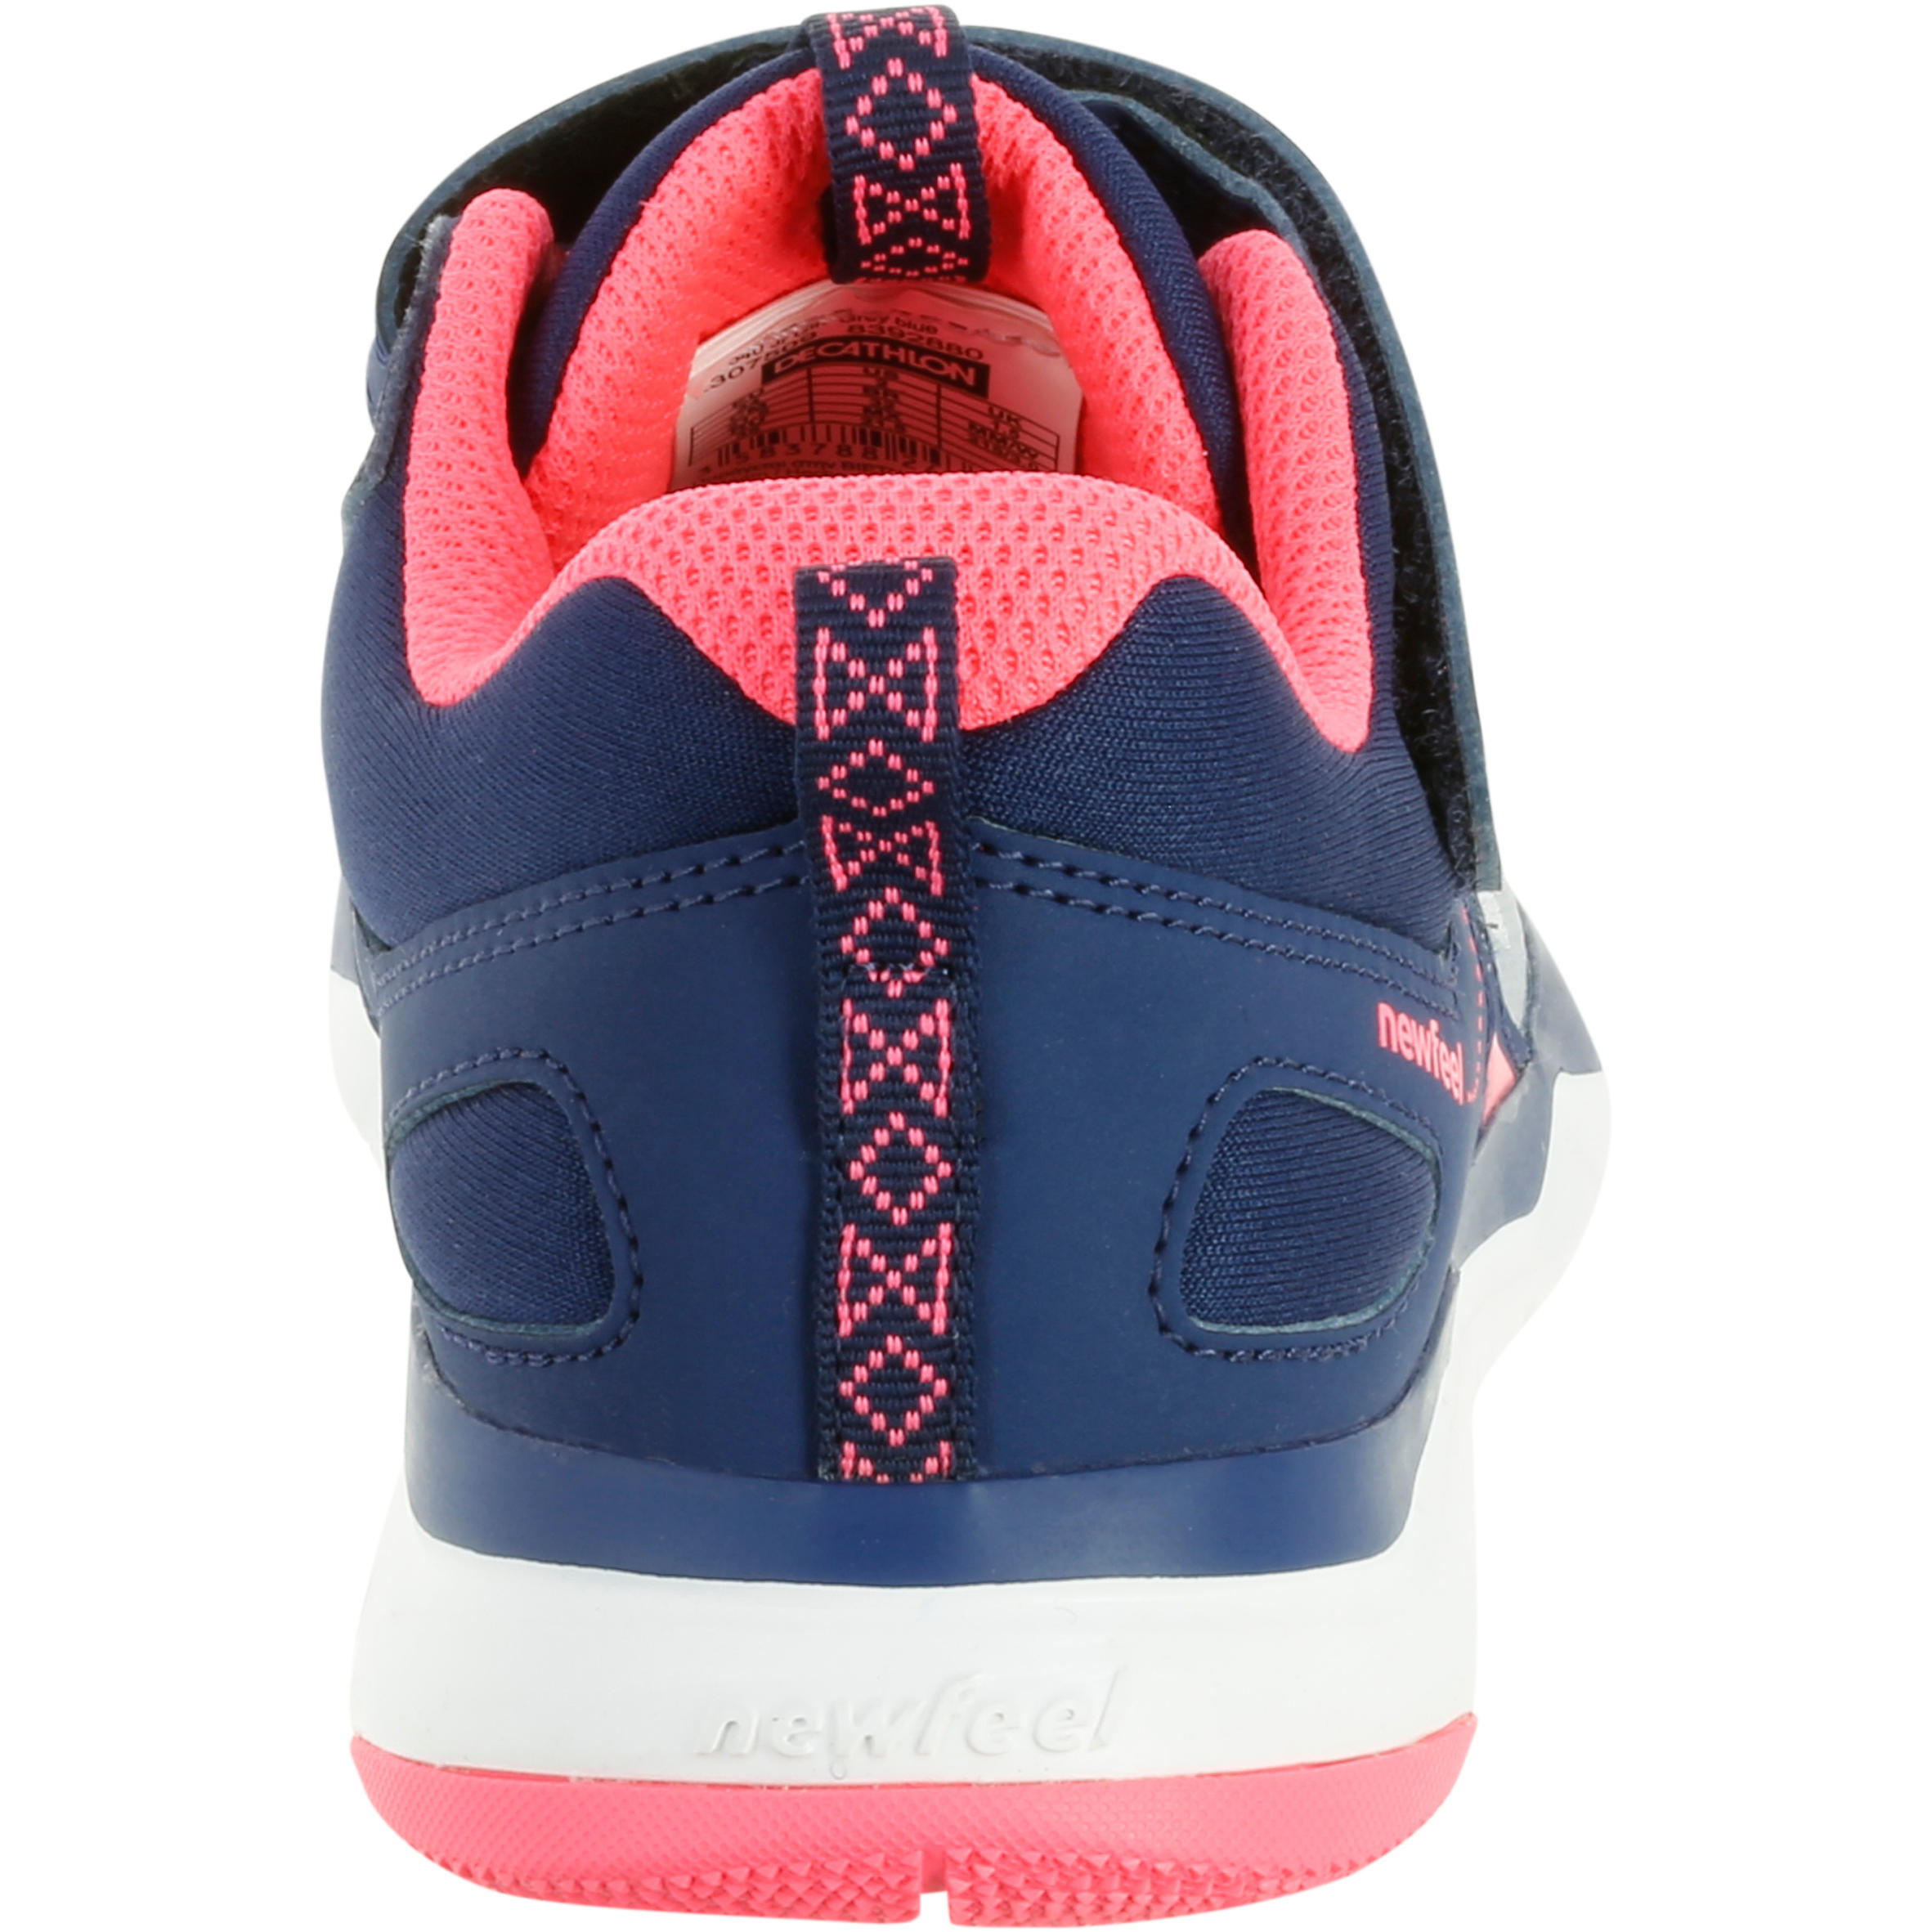 Walking shoes for kids PW 540 - Grey/Pink